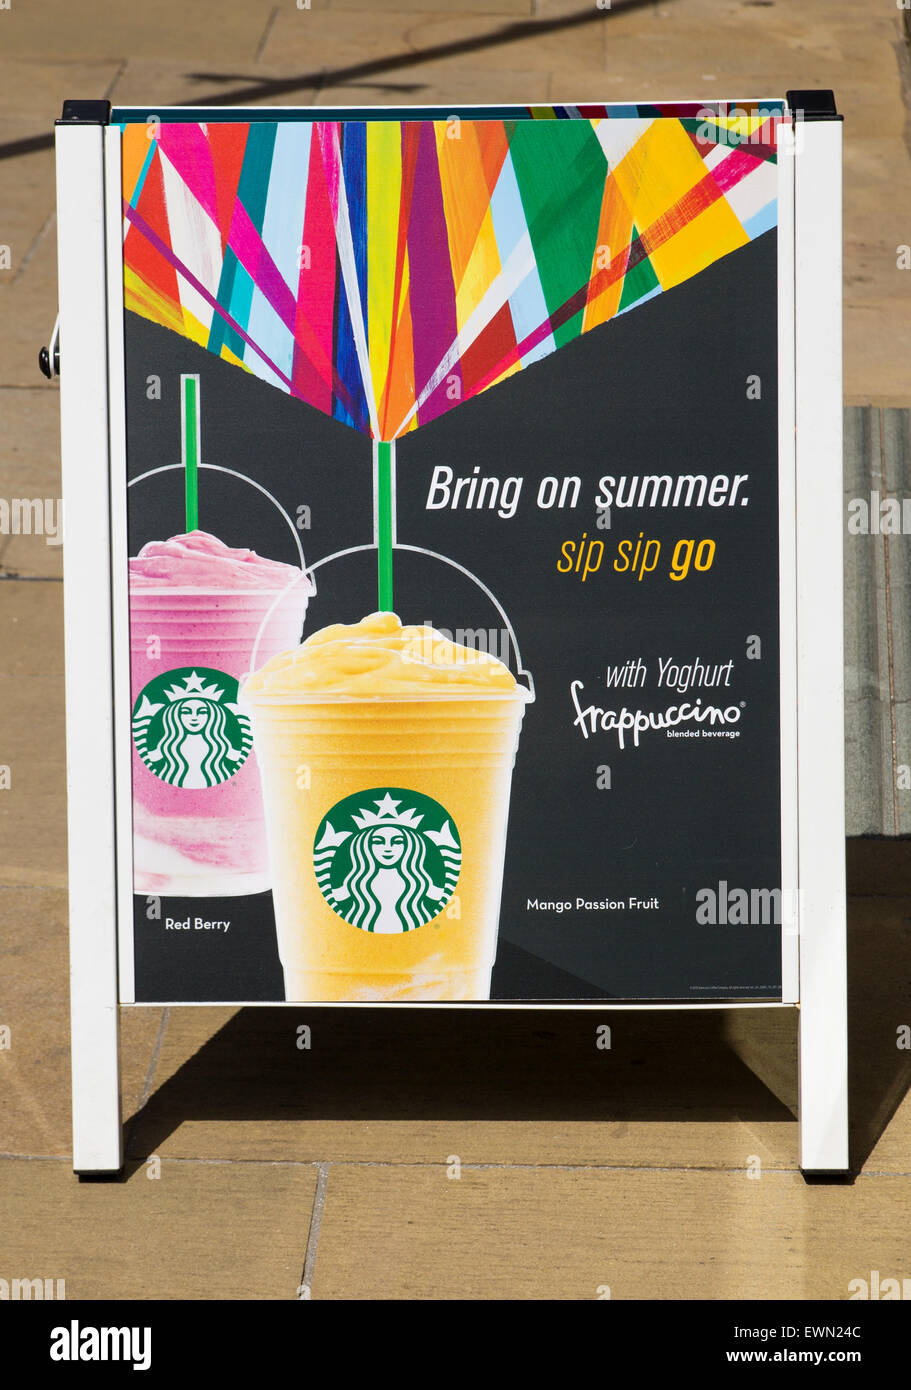 Starbucks Bring on Summer Frappuccino Sign - Stock Image